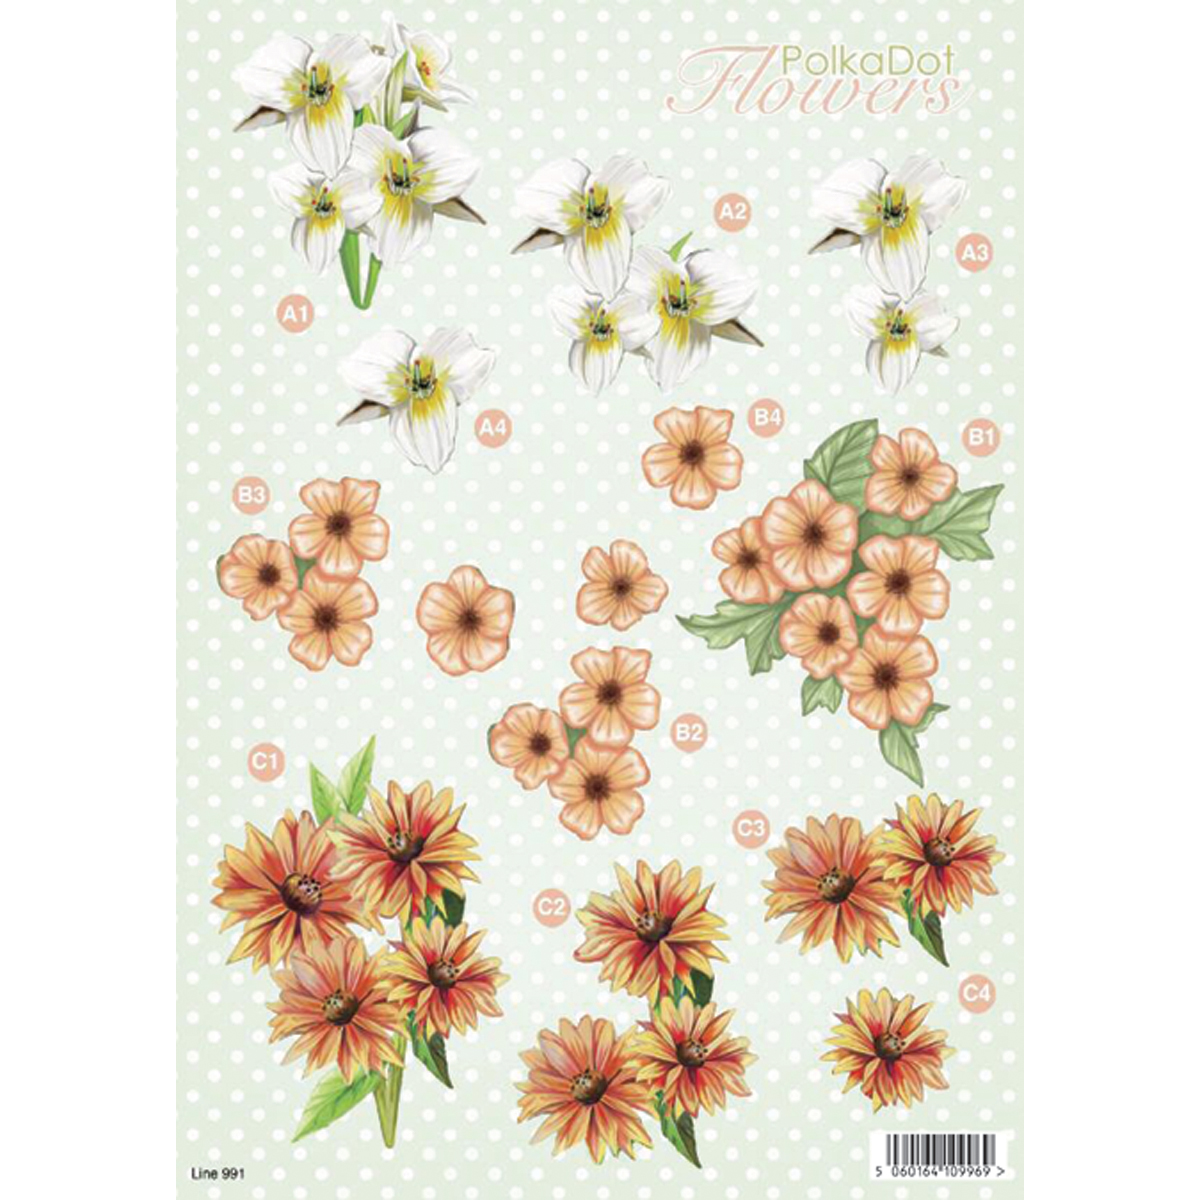 "3D Die-Cut Decoupage Sheet 8.3""X11.69""-Polka Dot Flowers: Trillium & Orange"